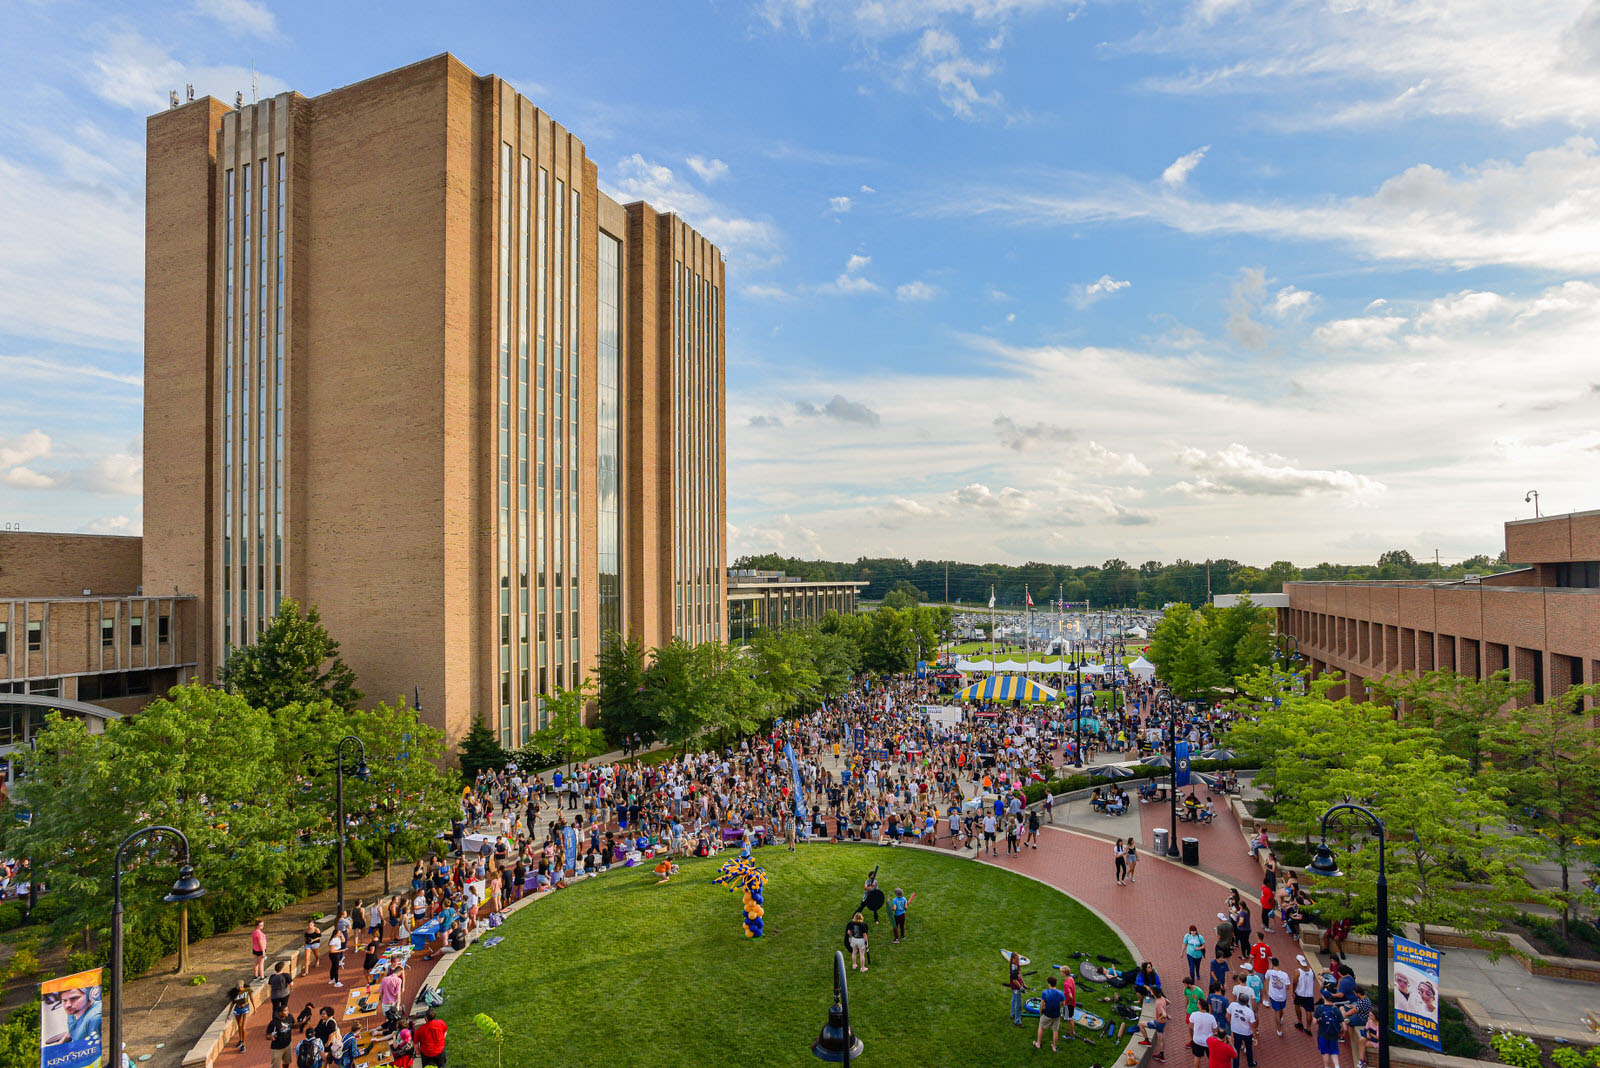 Kent State University students gather on Risman Plaza for Blastoff 2019, its annual back-to-school celebration. For fall 2019, Kent State celebrates its largest honors class in history and welcomes a freshman class with strong GPA and ACT scores.